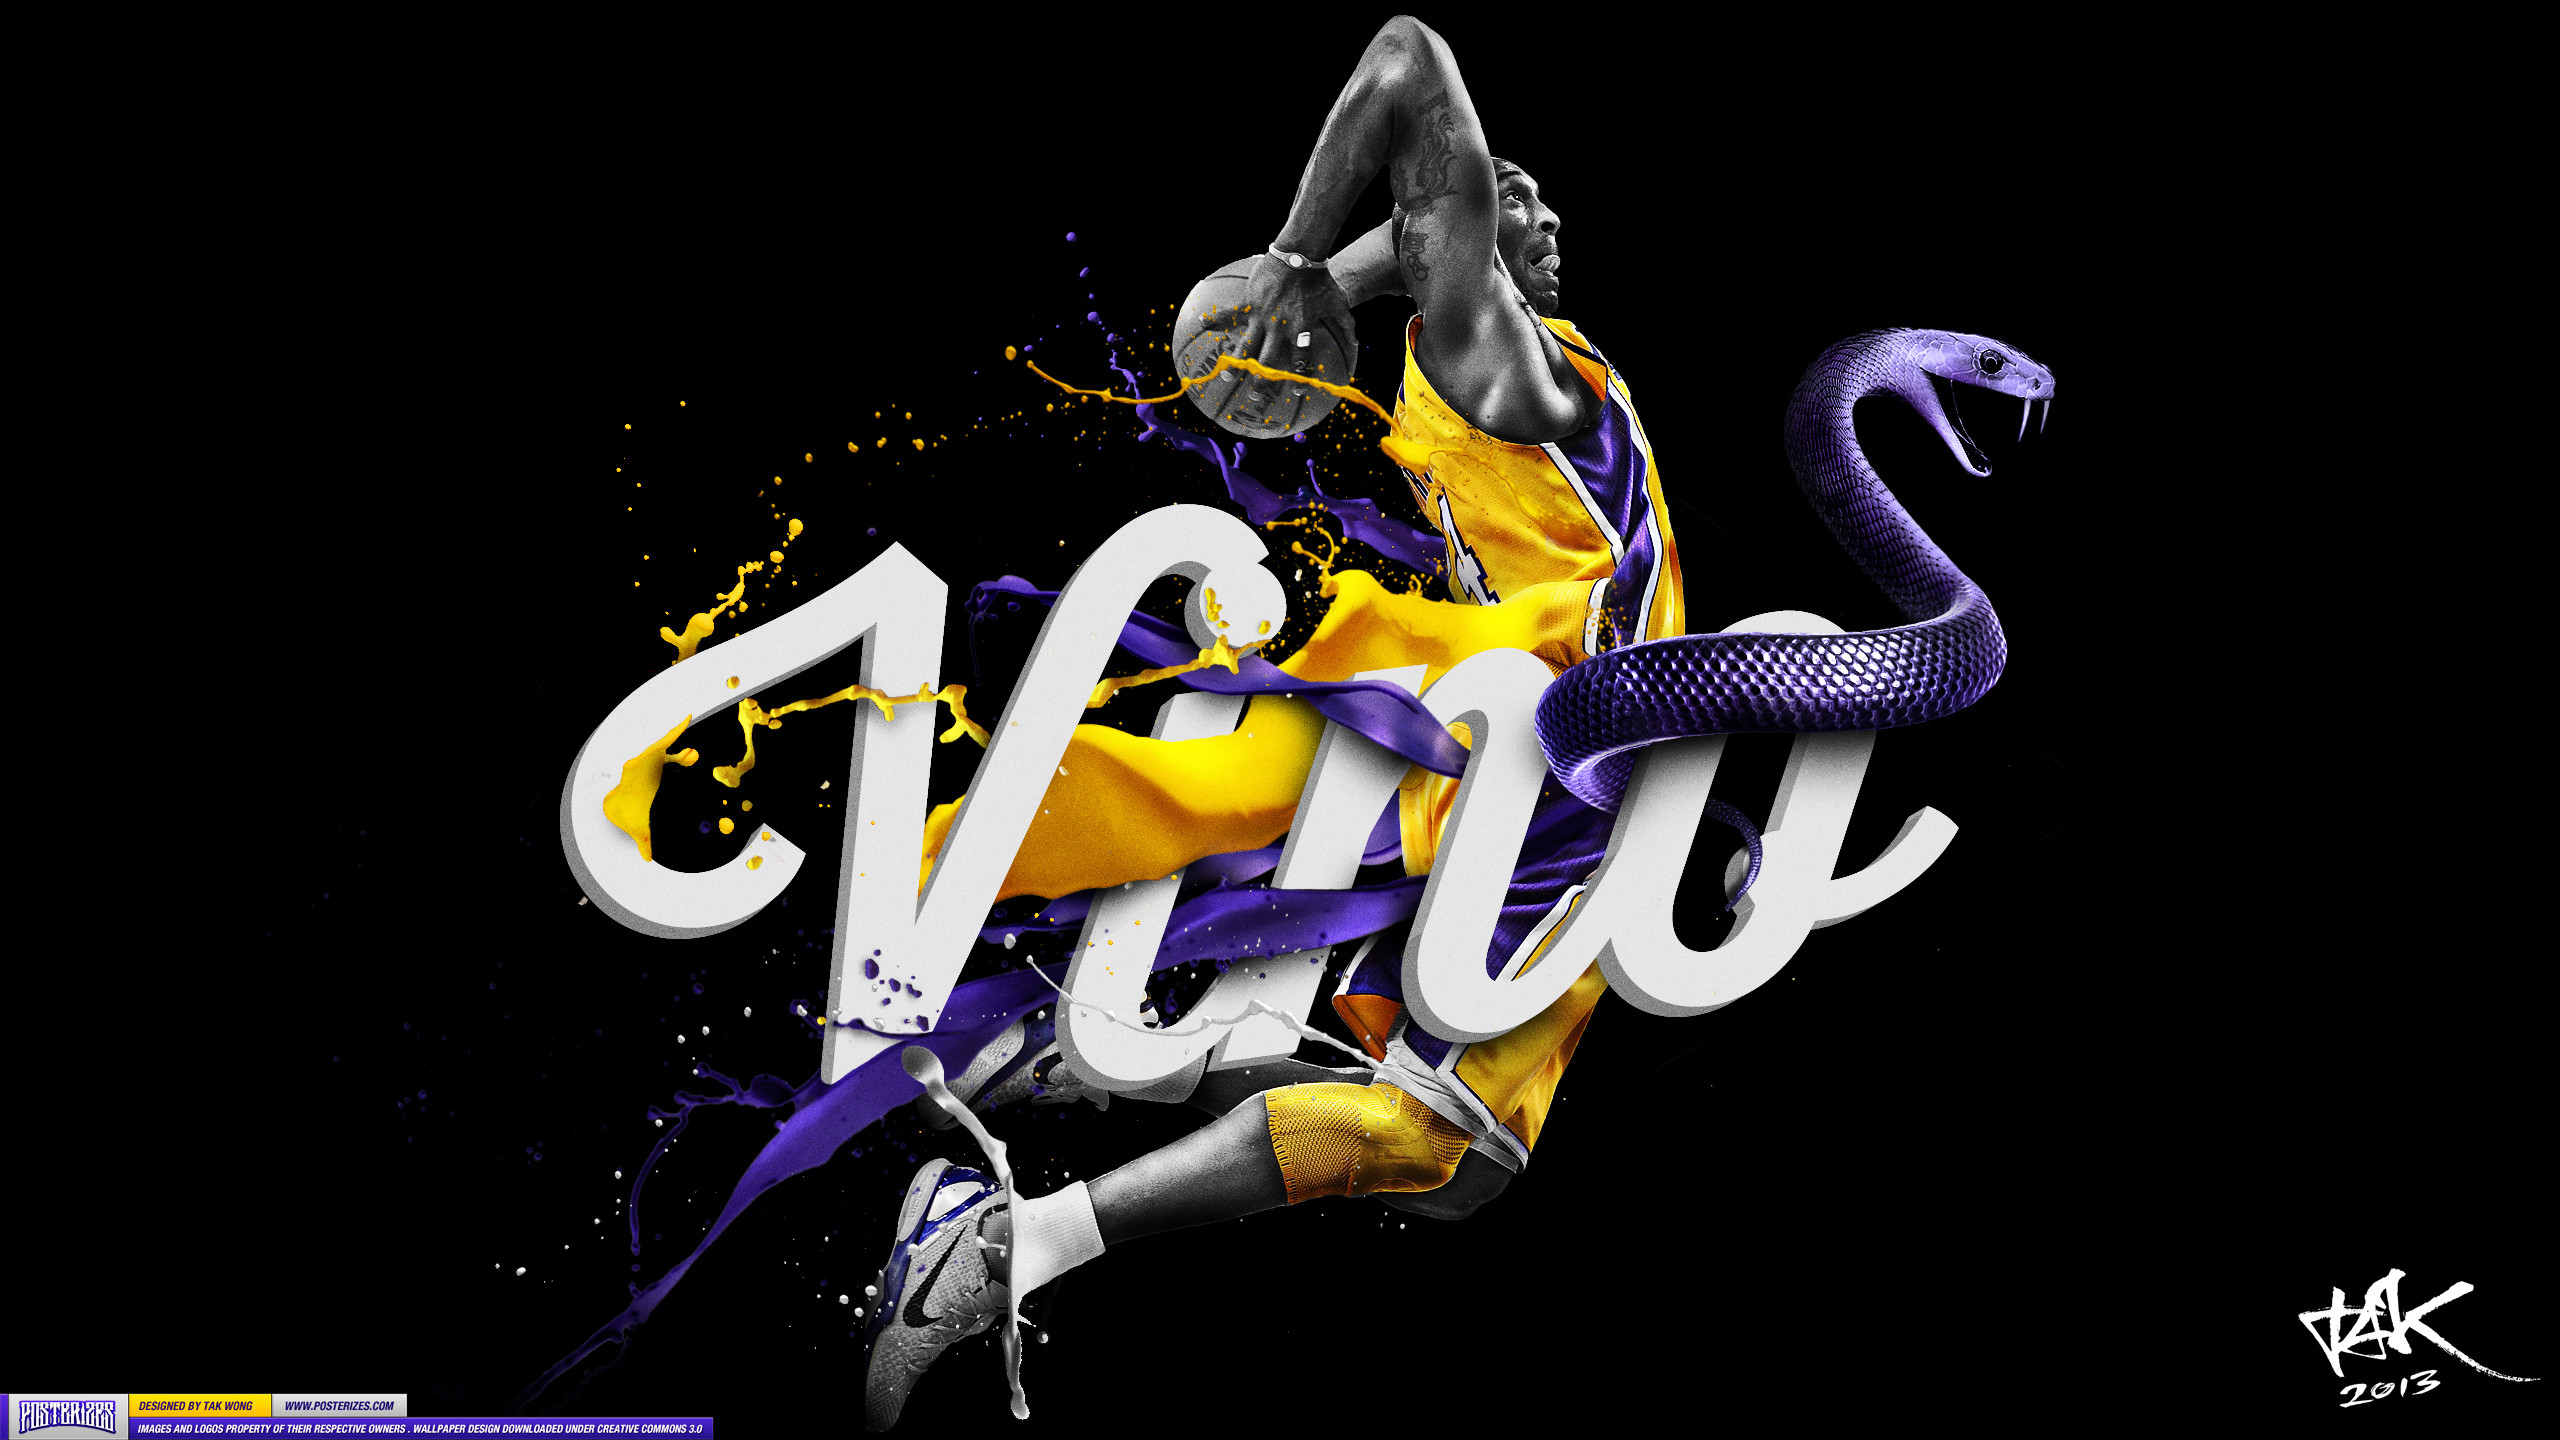 Res: 2560x1440, Kobe Bryant Logo, HD Wallpapers For Free